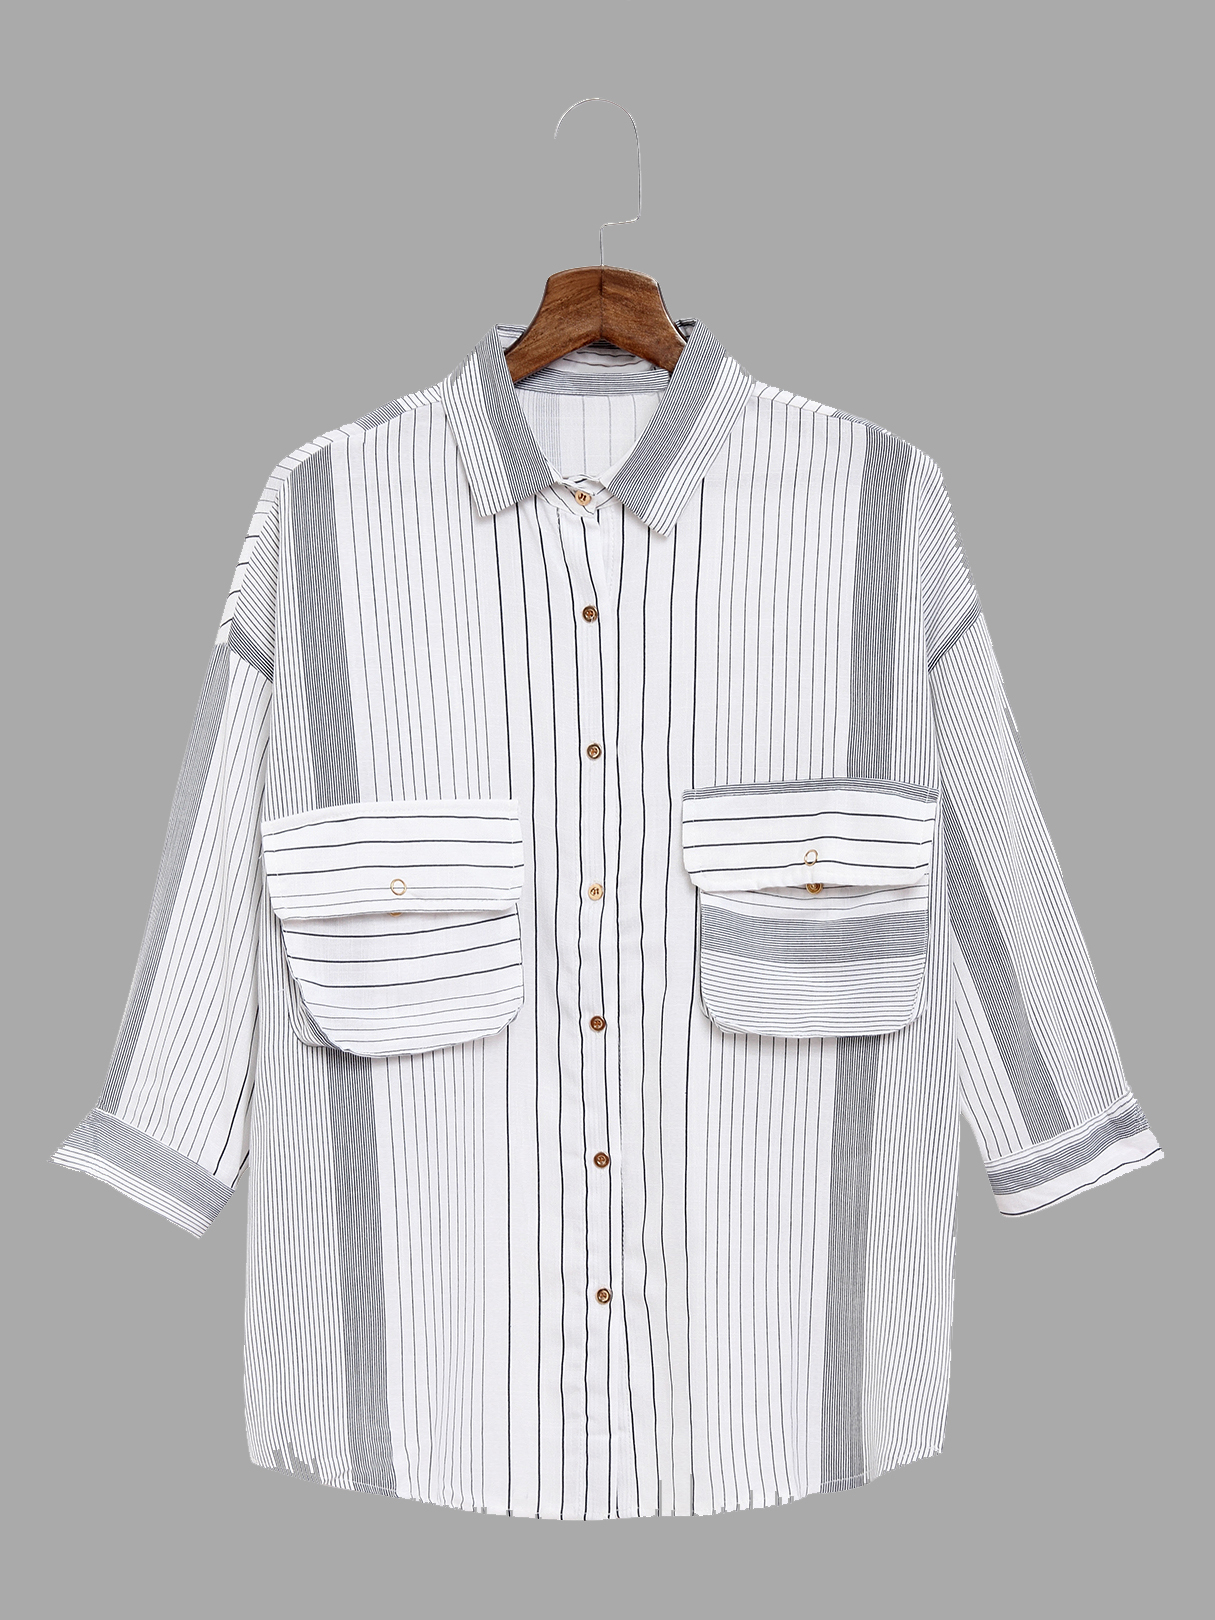 Stripe Pattern Shirt In Sweet design blue stripe pattern shirt in sweet design